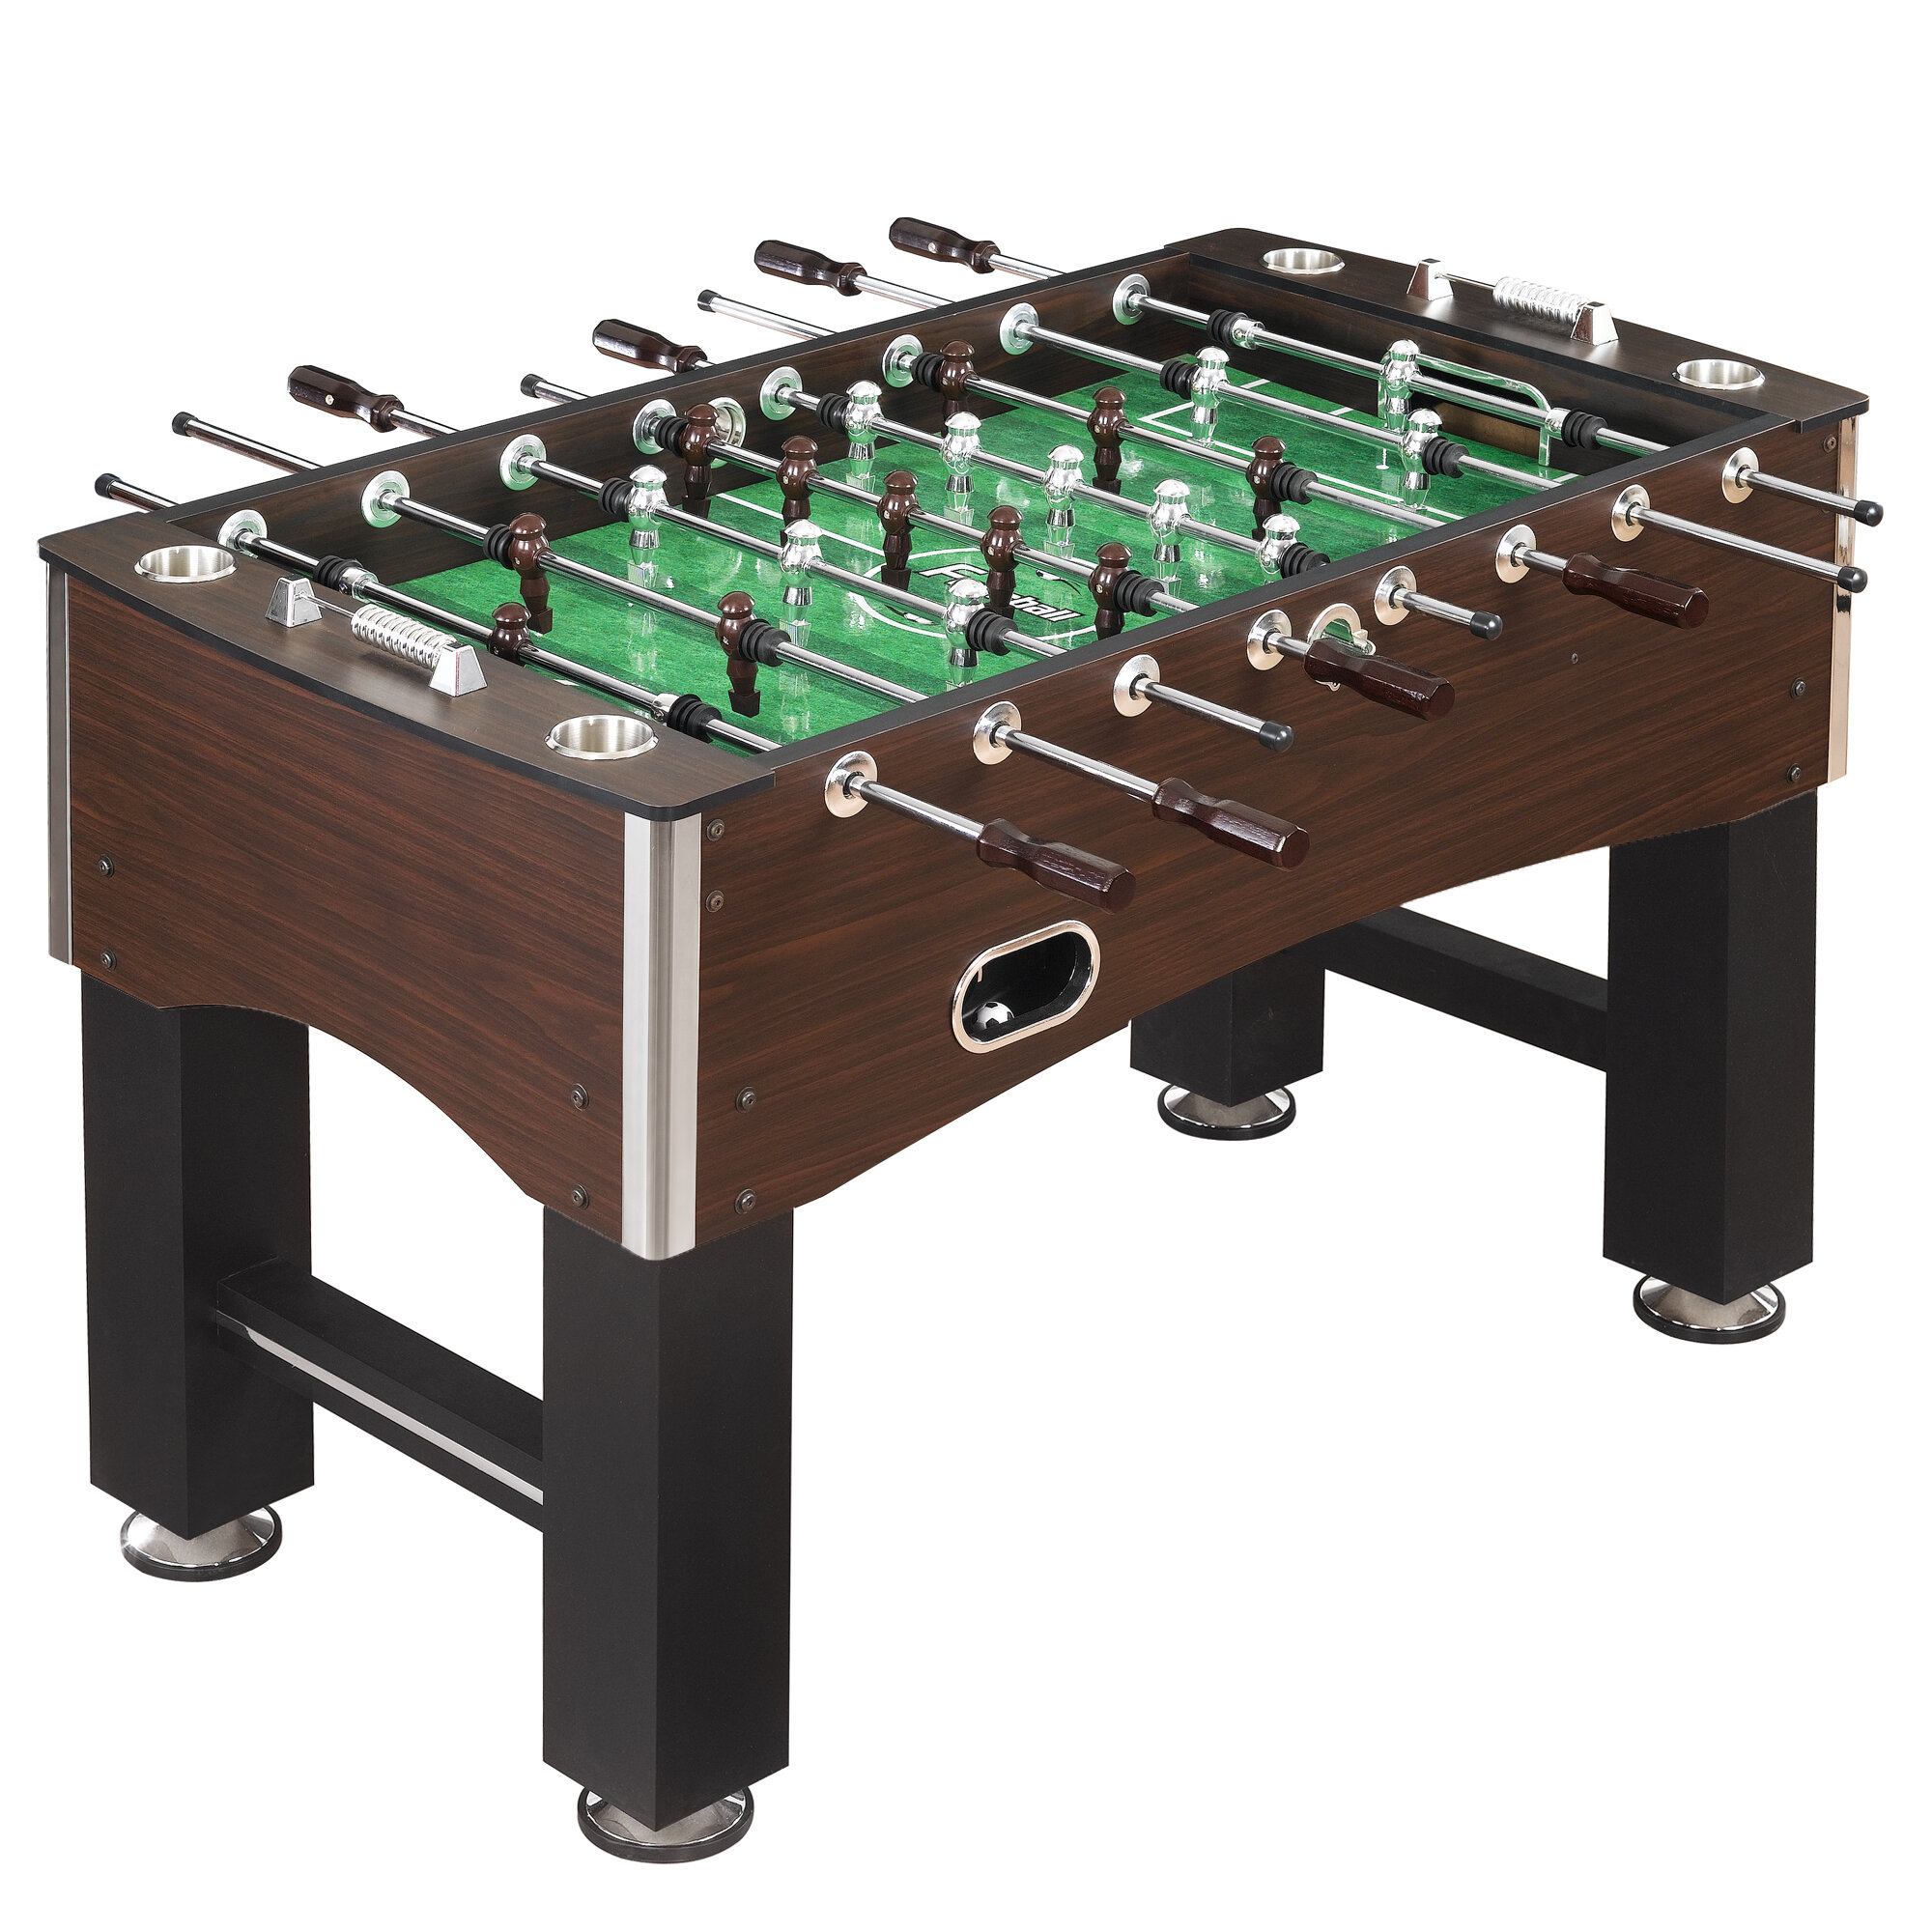 Hathaway Games Primo Soccer Foosball Table Reviews Wayfair - Tournament soccer foosball table